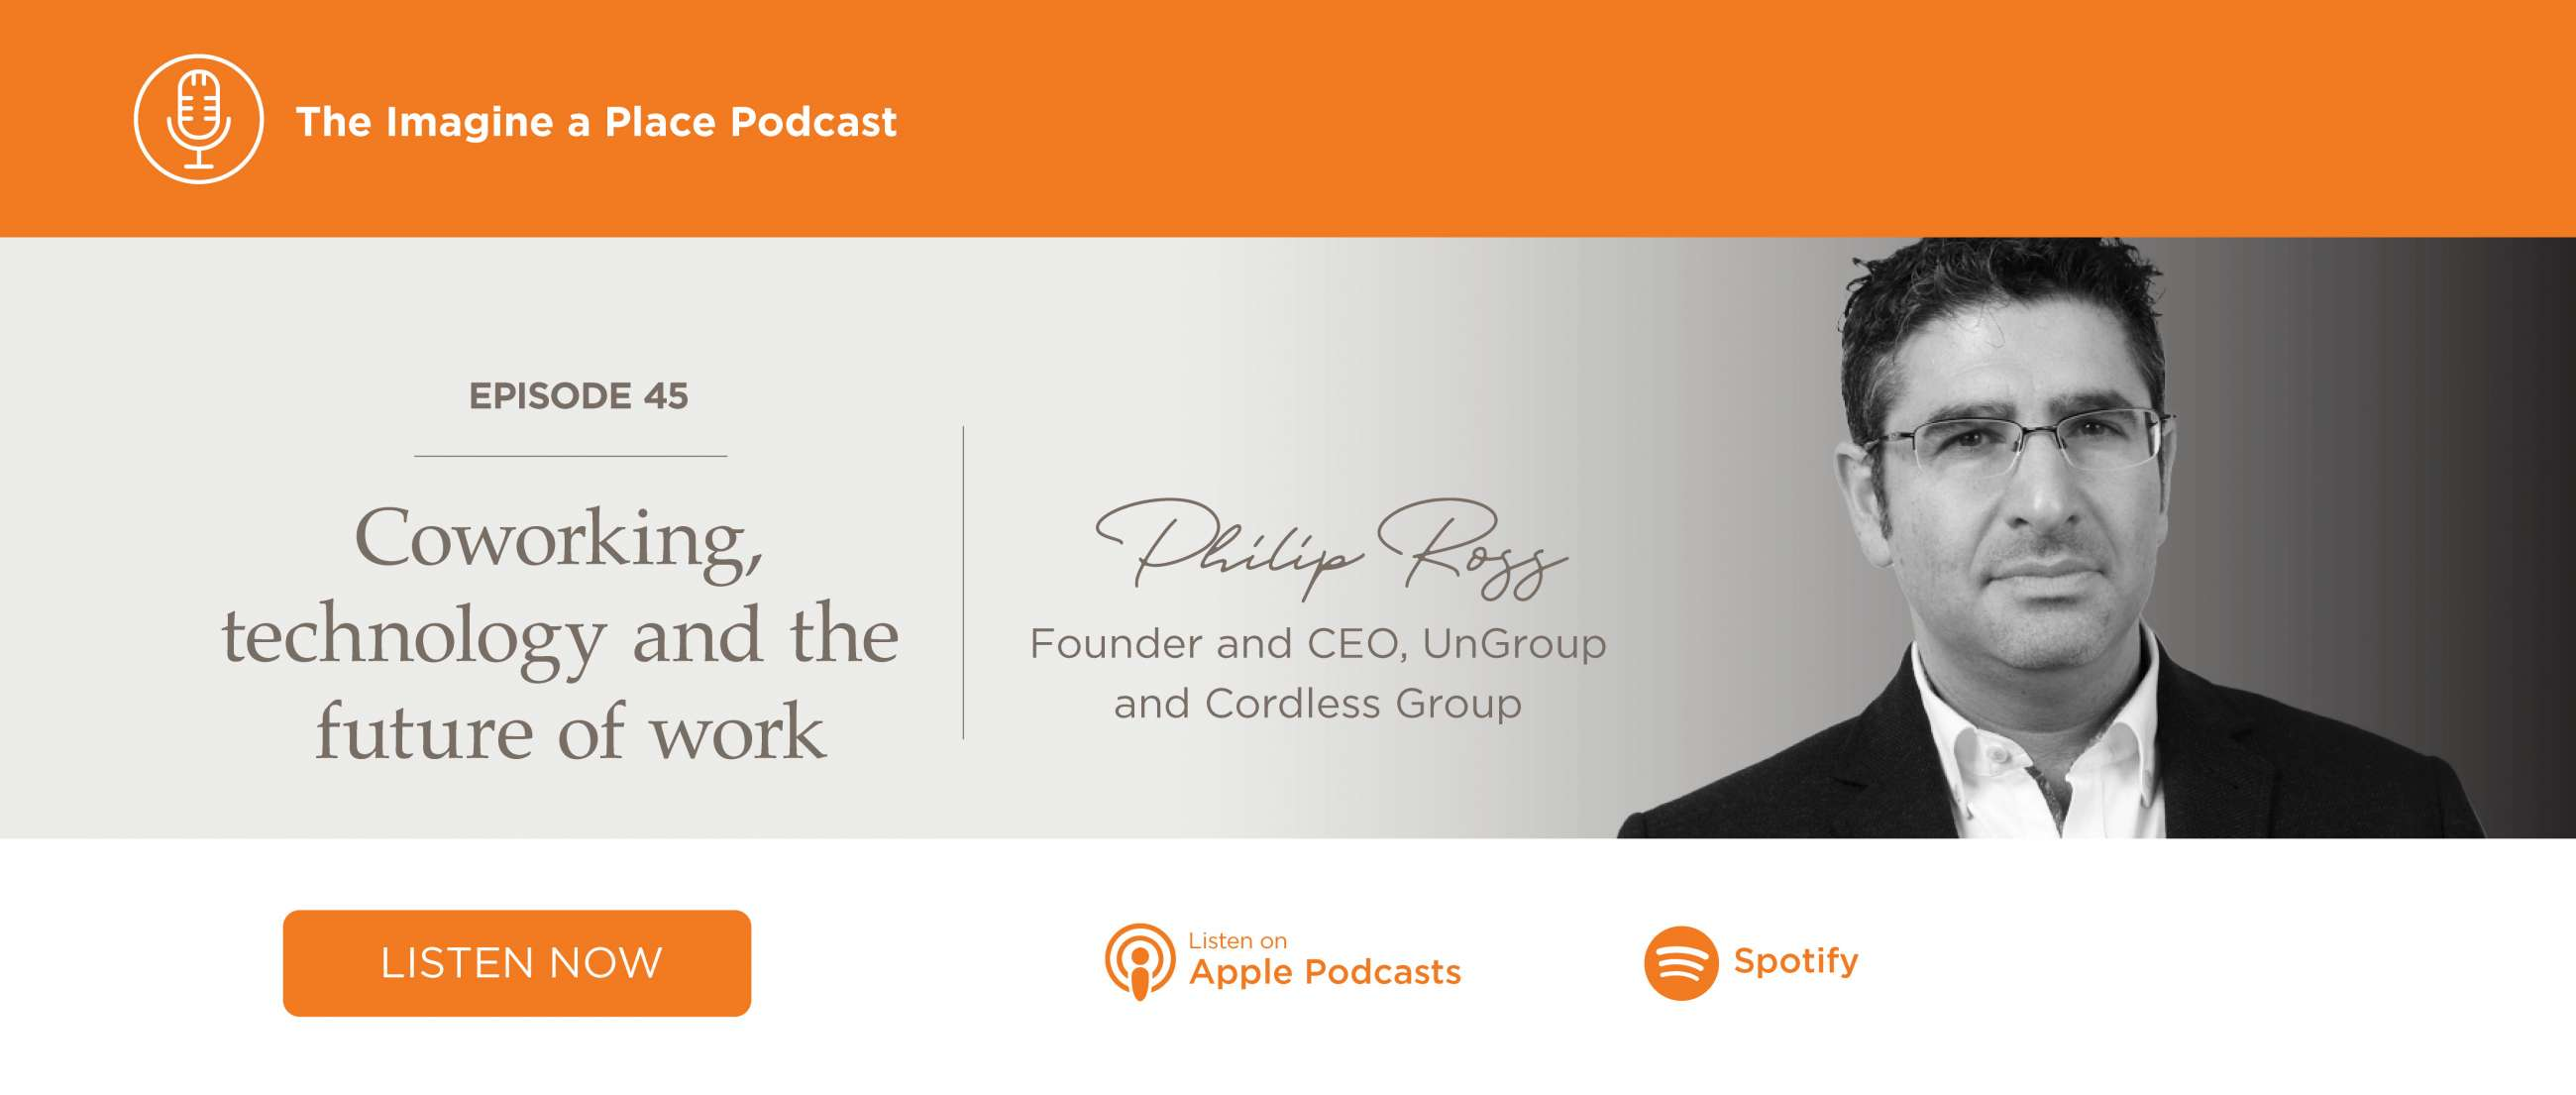 Imagine a Place Podcast with Philip Ross of Unwork